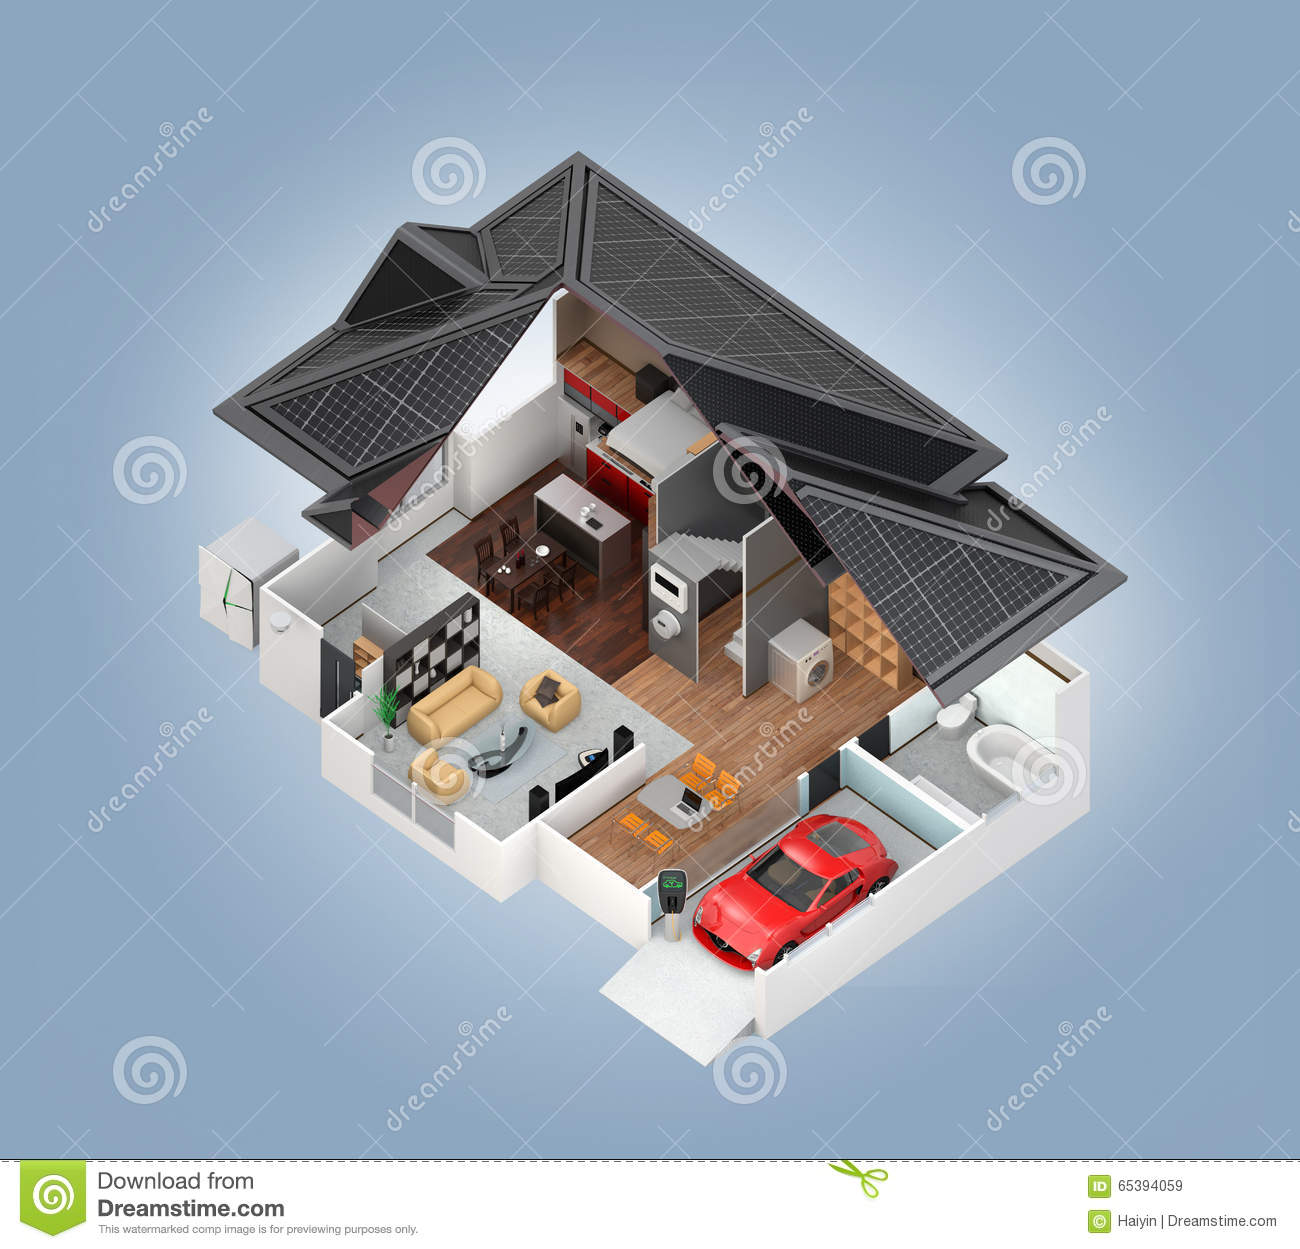 Cutaway View Of Smart House Interior Stock Illustration